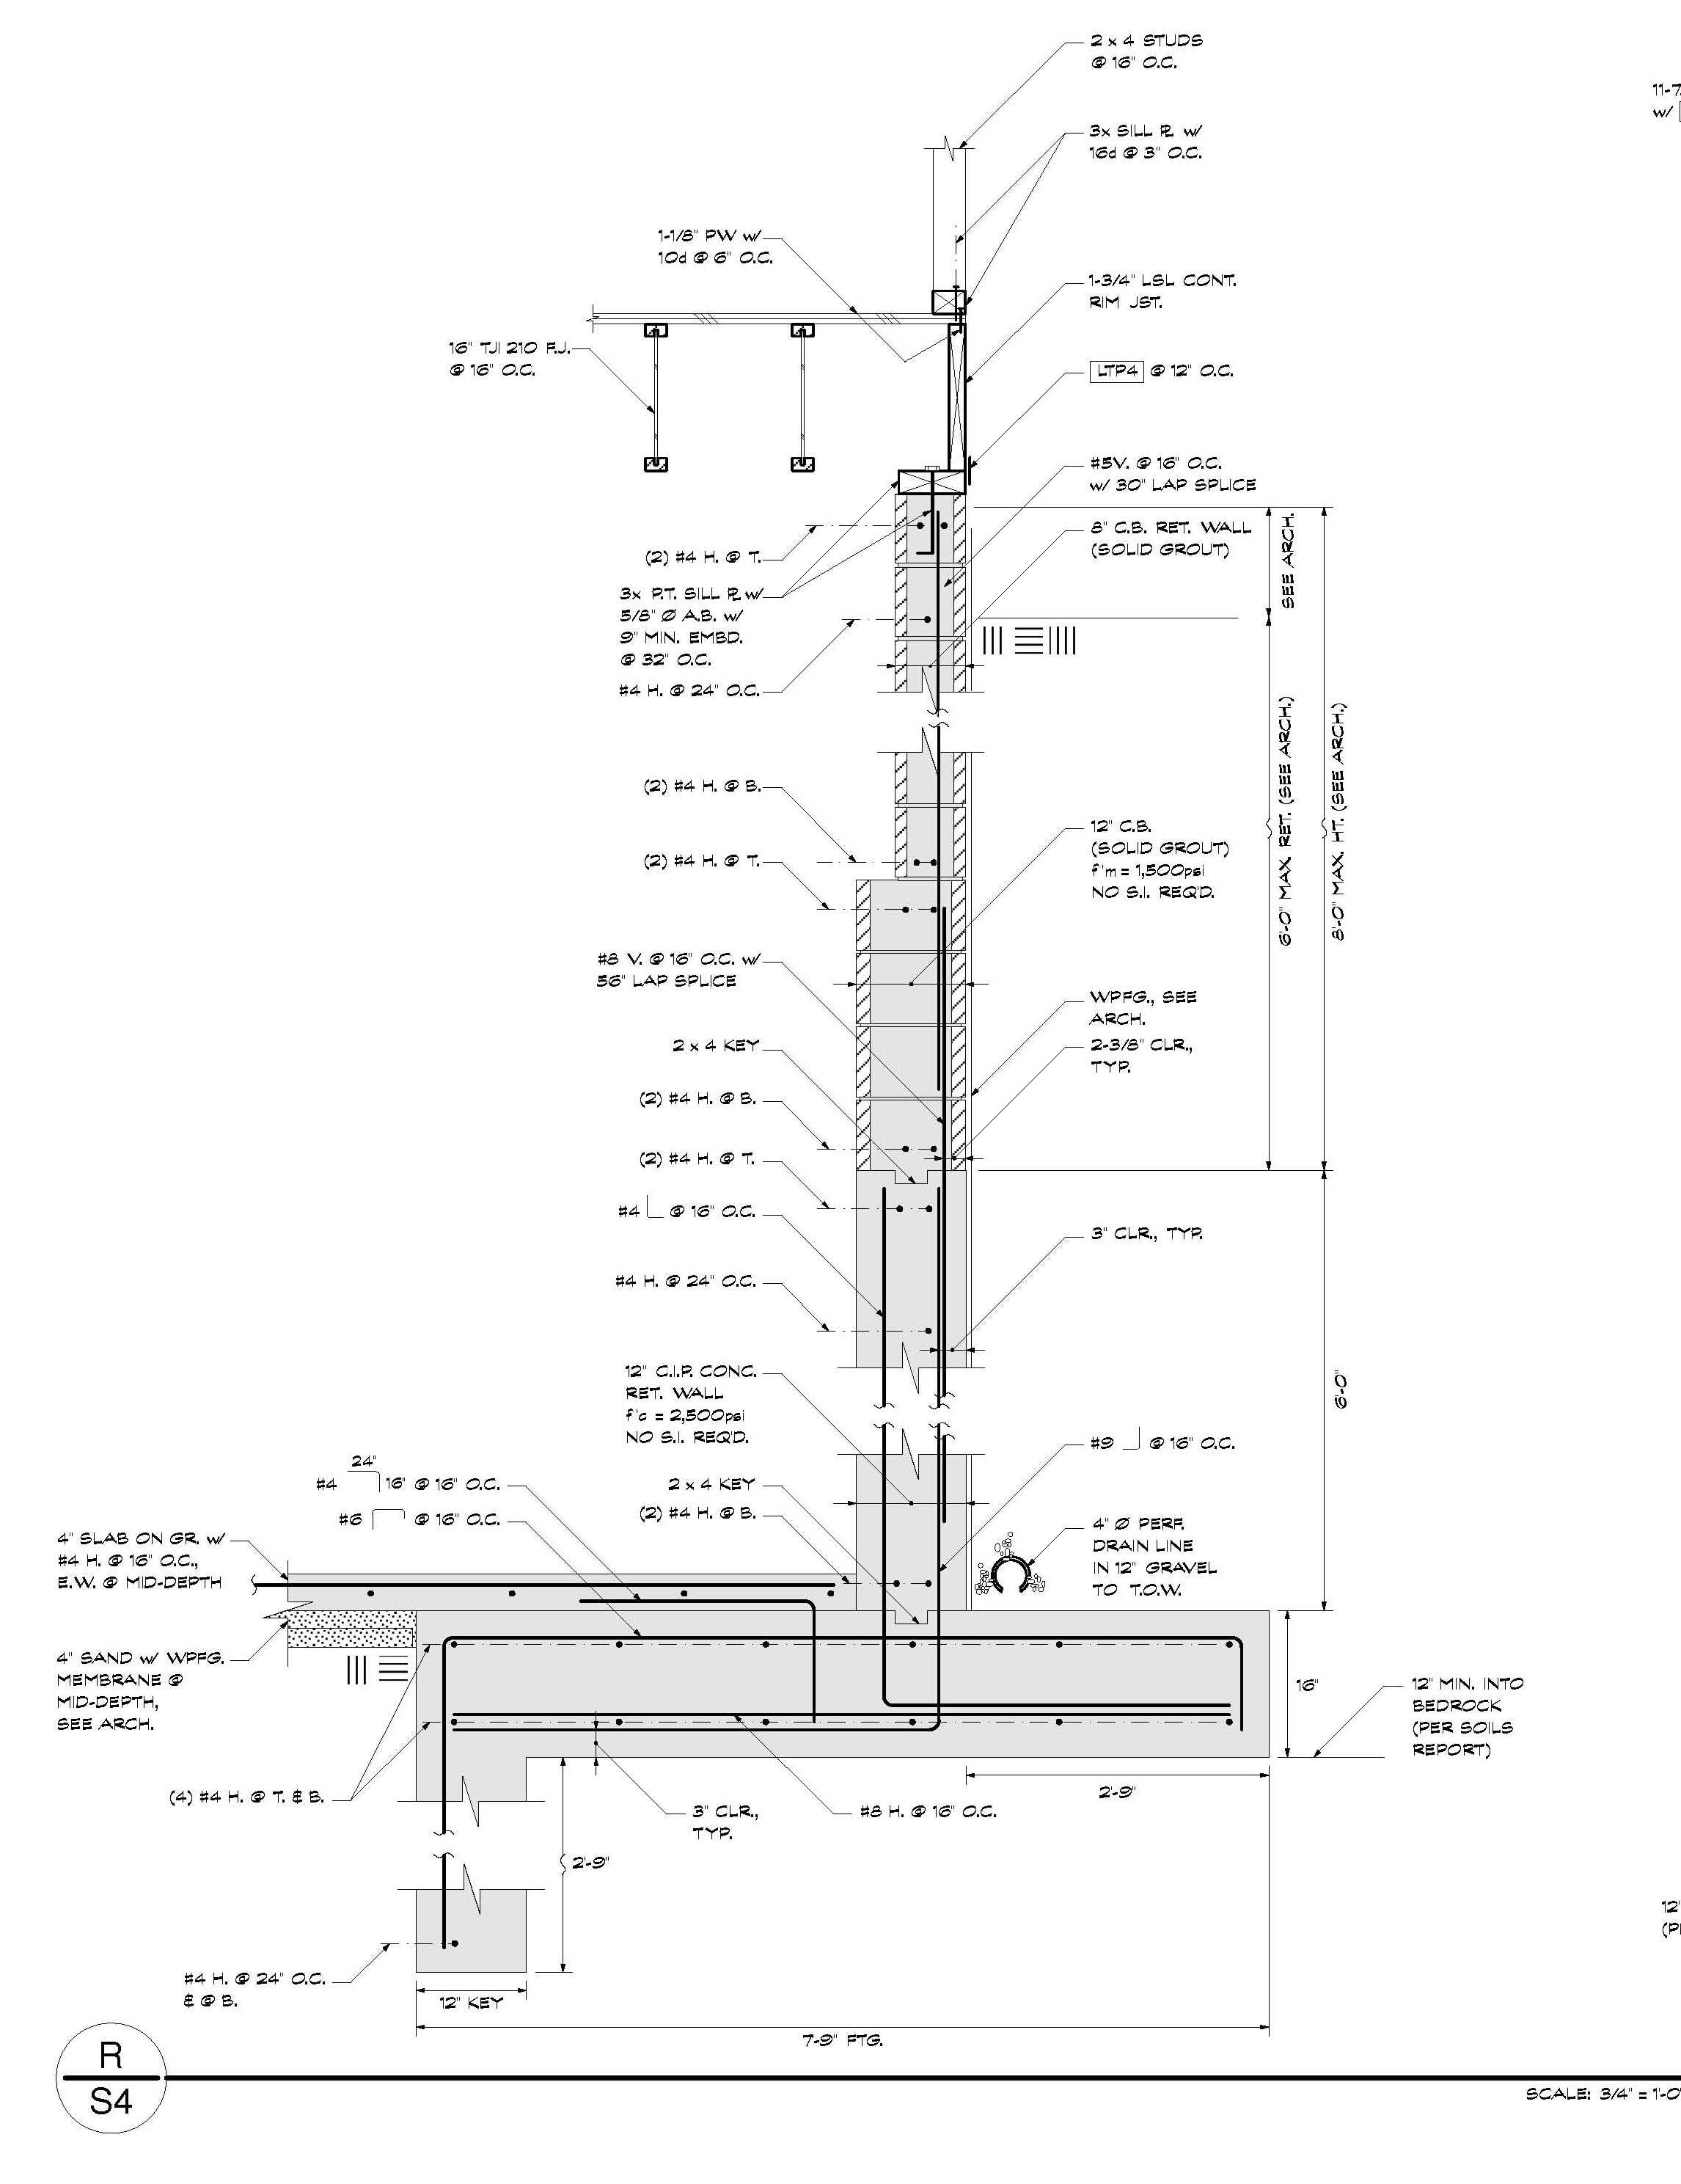 Foundation Rebar Splice Diagram